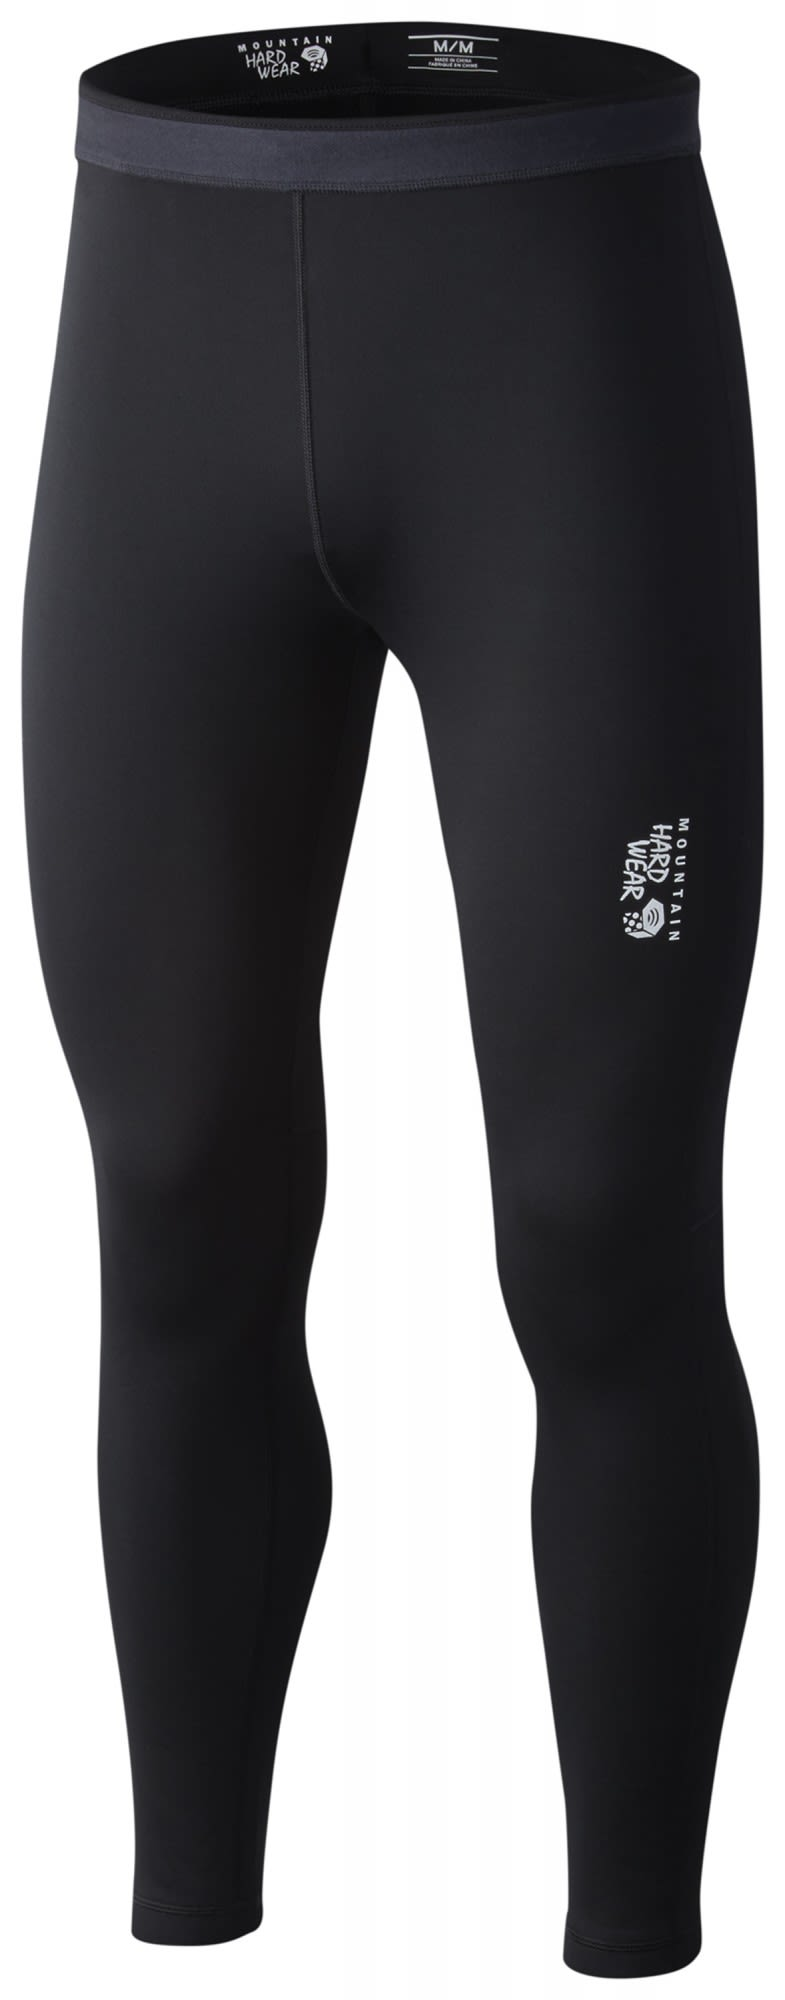 Mountain Hardwear 32 Degree Tight Schwarz, Male Hose, M